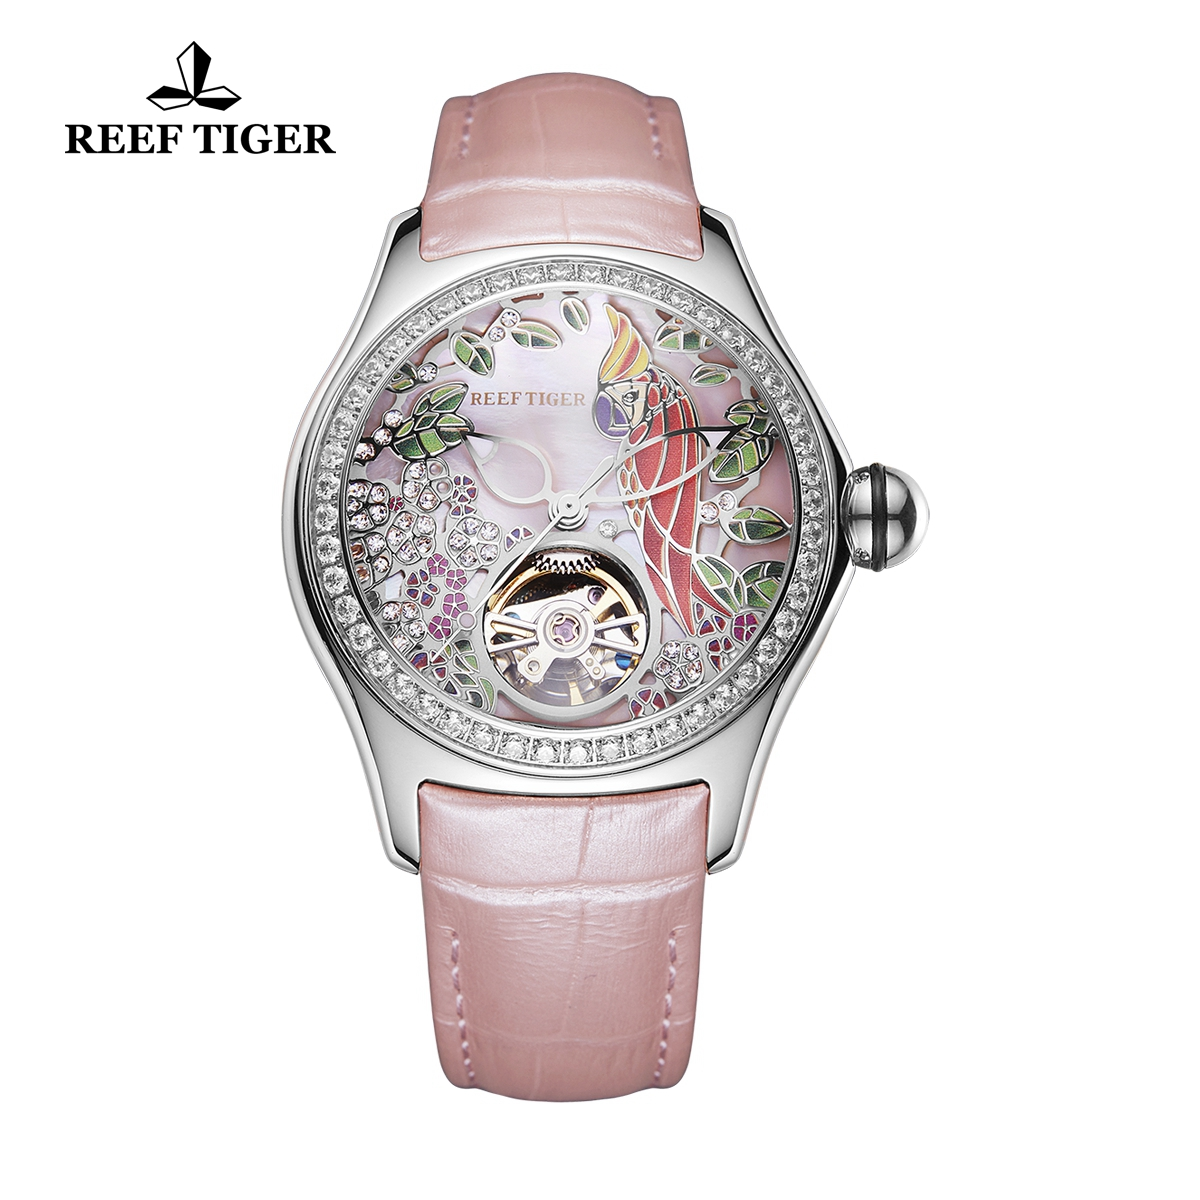 Reef Tiger Aurora Parrot Casual Diamonds Bezel Watch Rose Gold Case Leather Strap RGA7105-YPPD